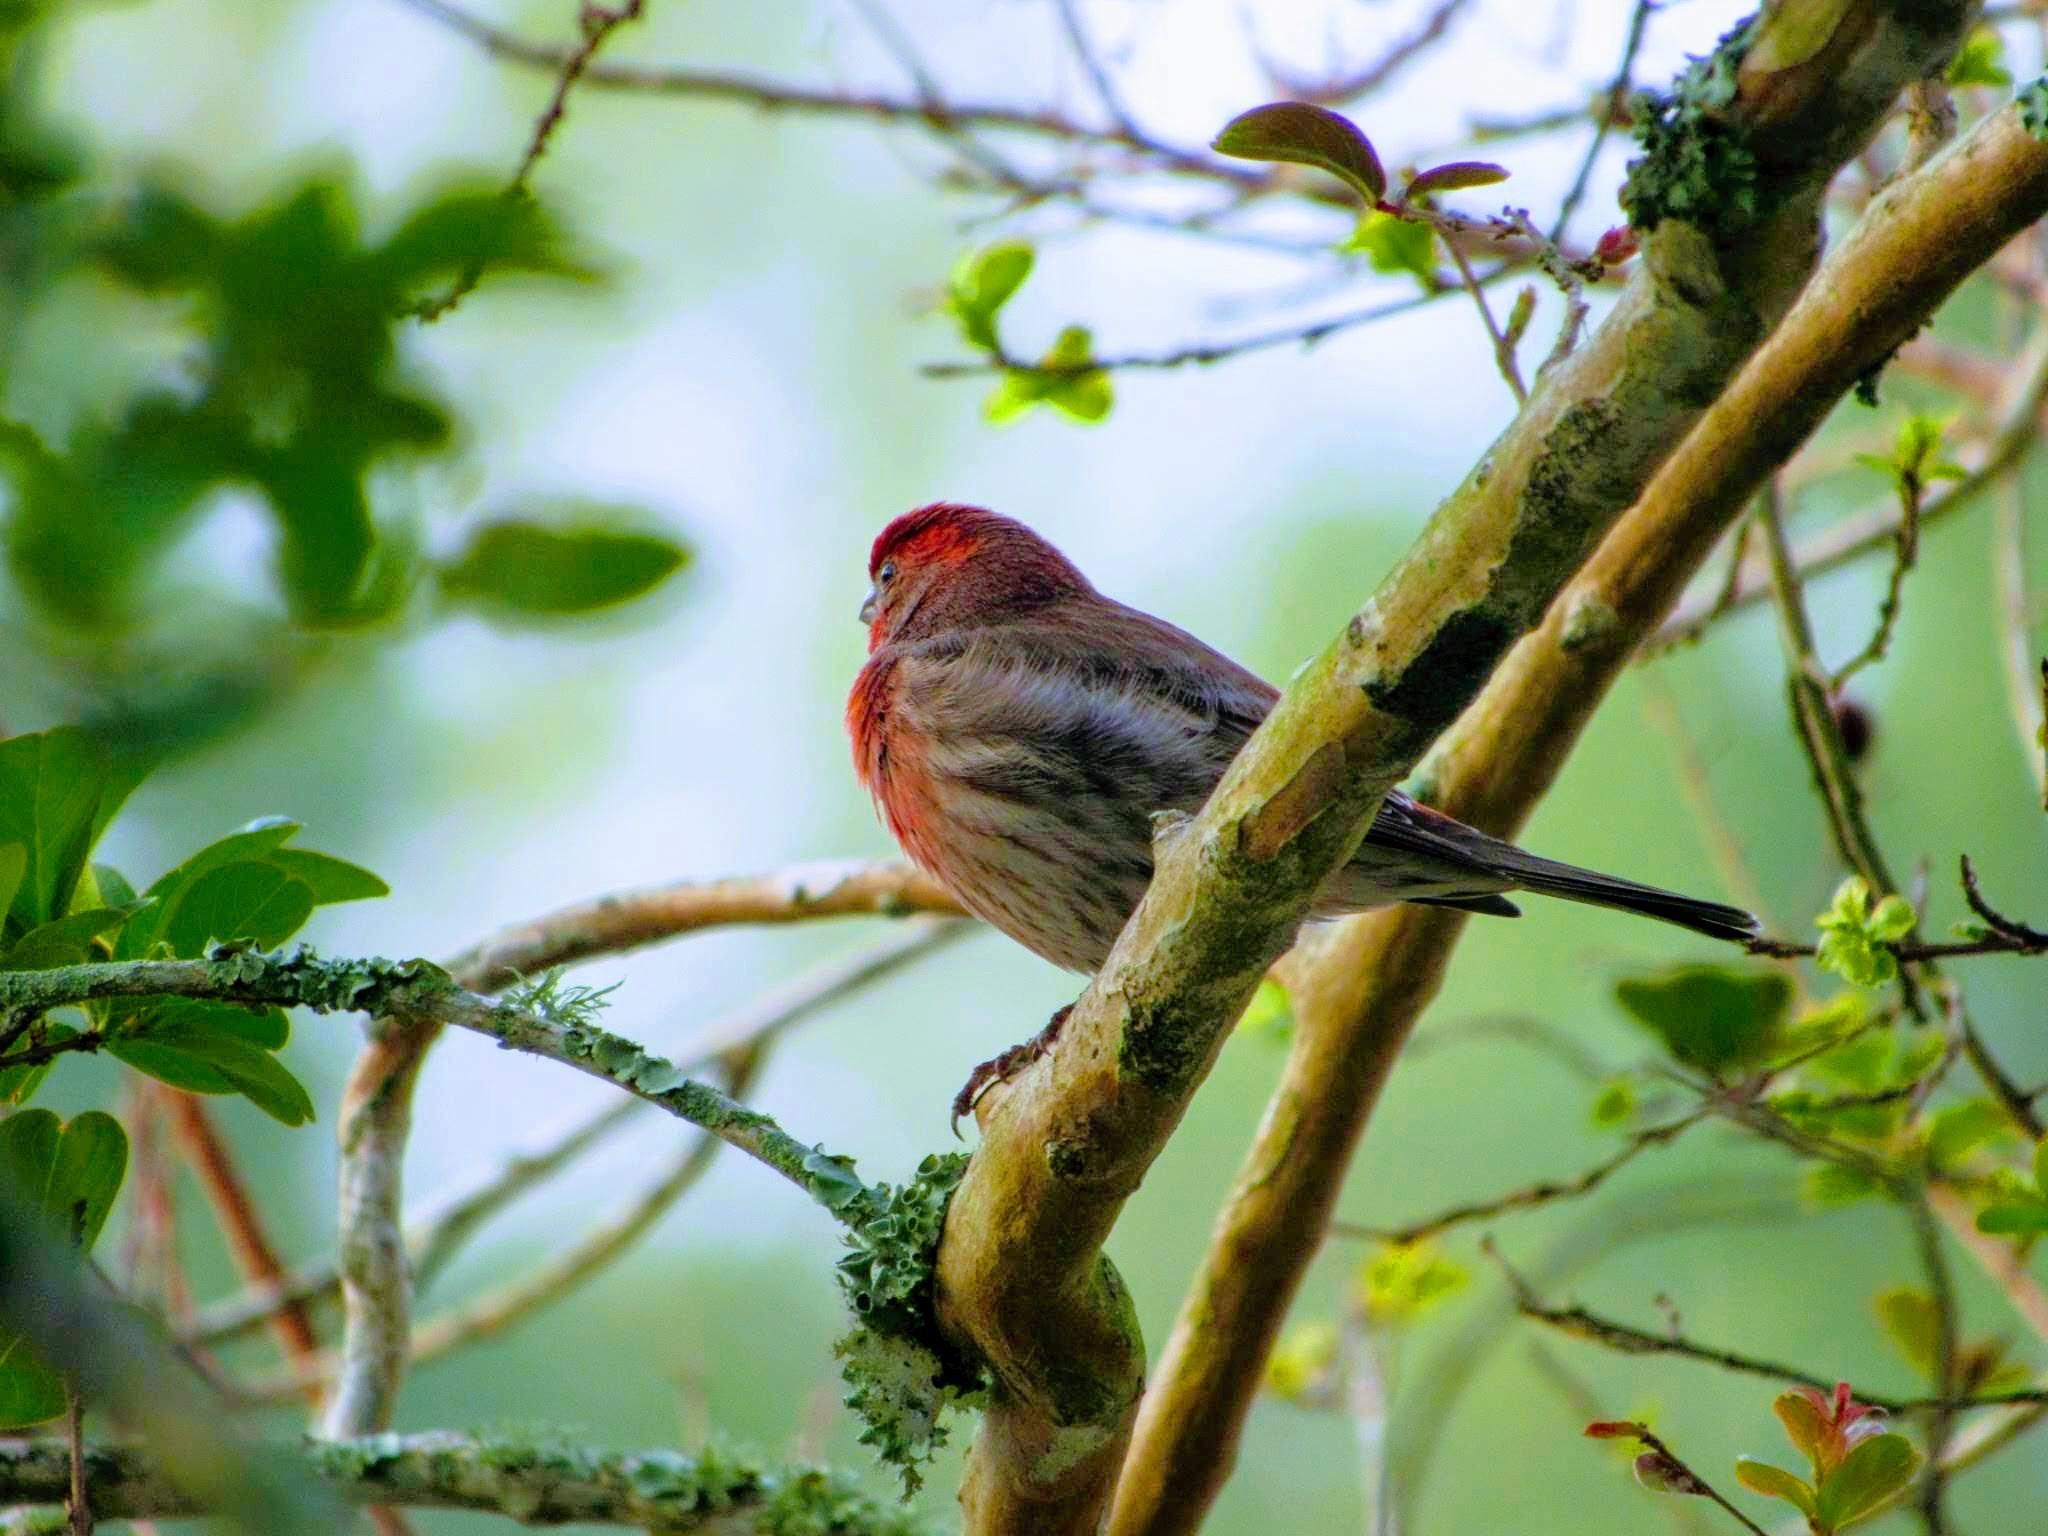 A house finch perched on a branch gazes into the abyss